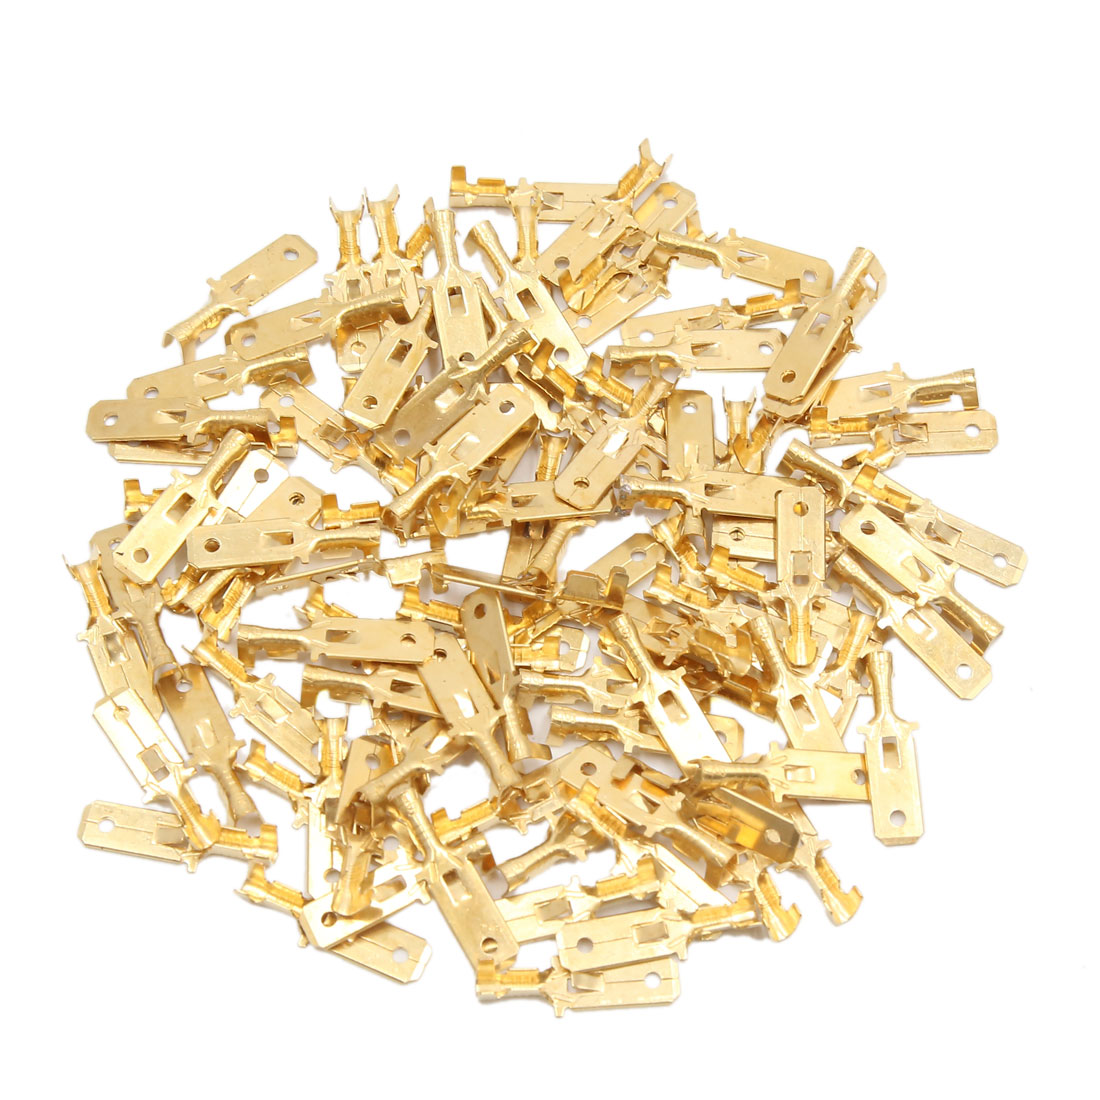 100pcs Gold Tone Female Spade Terminals Connectors for Car Automobile